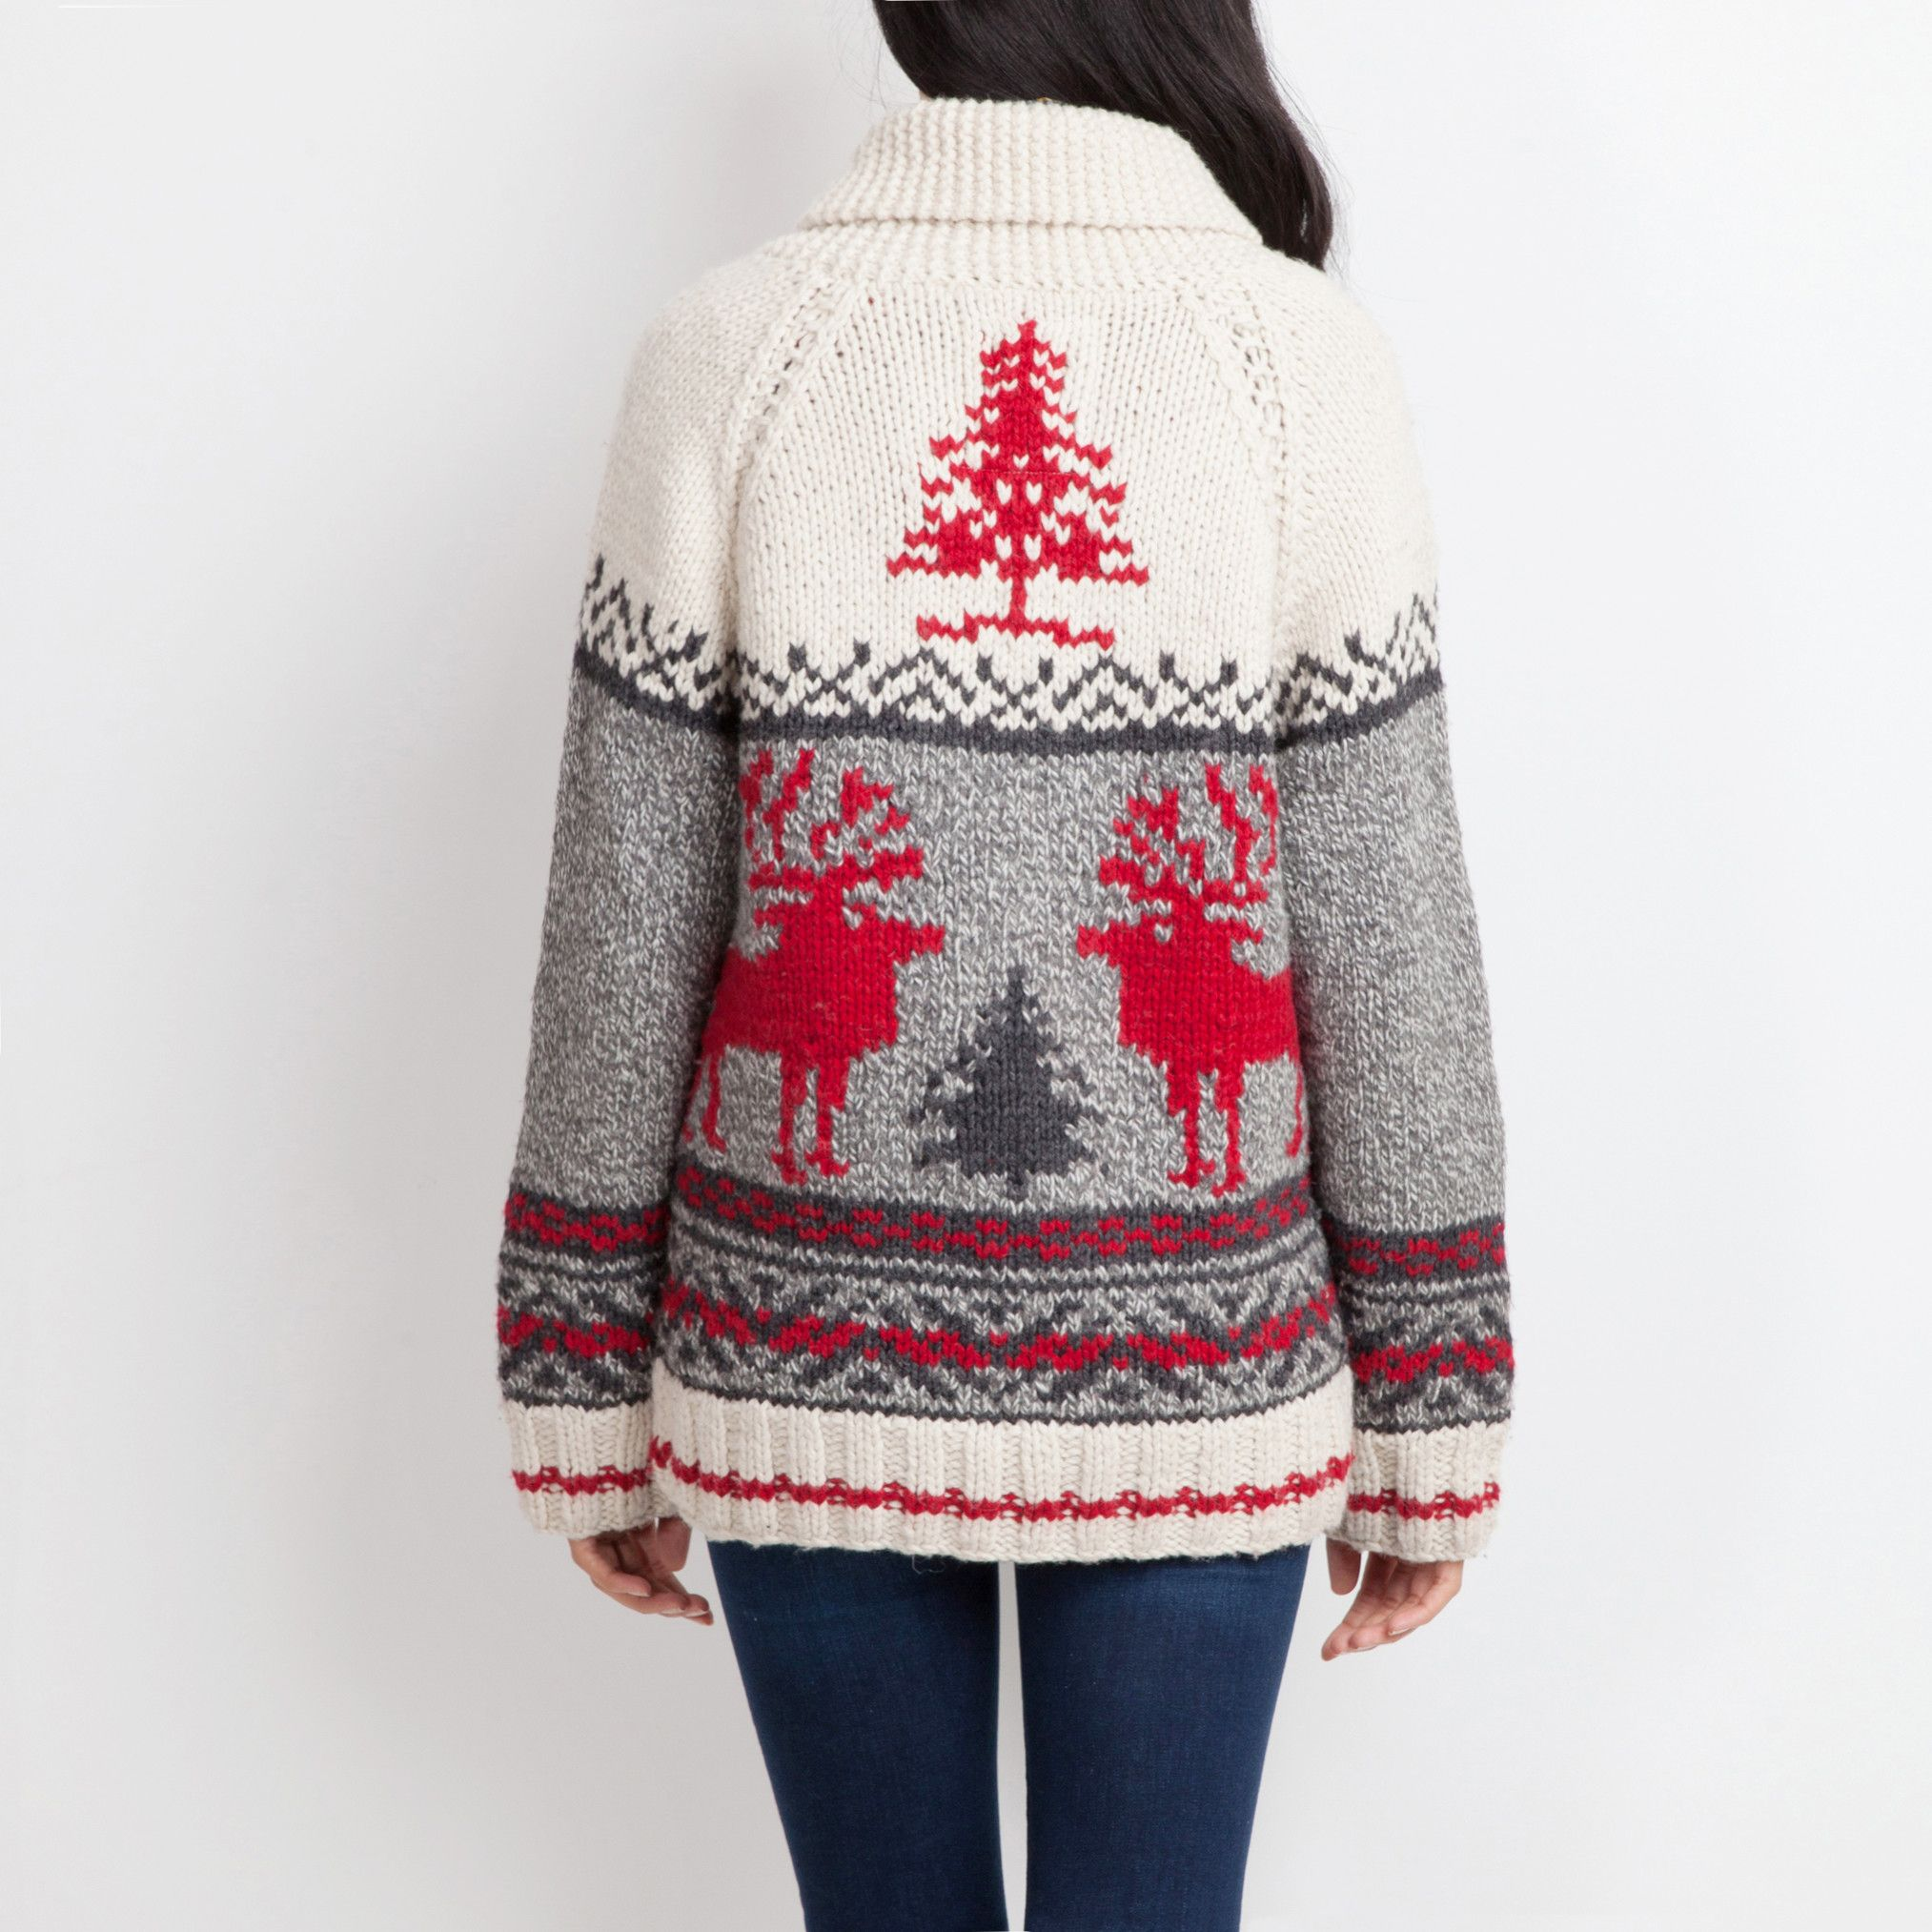 Mary Maxim Reindeer Sweater Roots Sweaters for Women